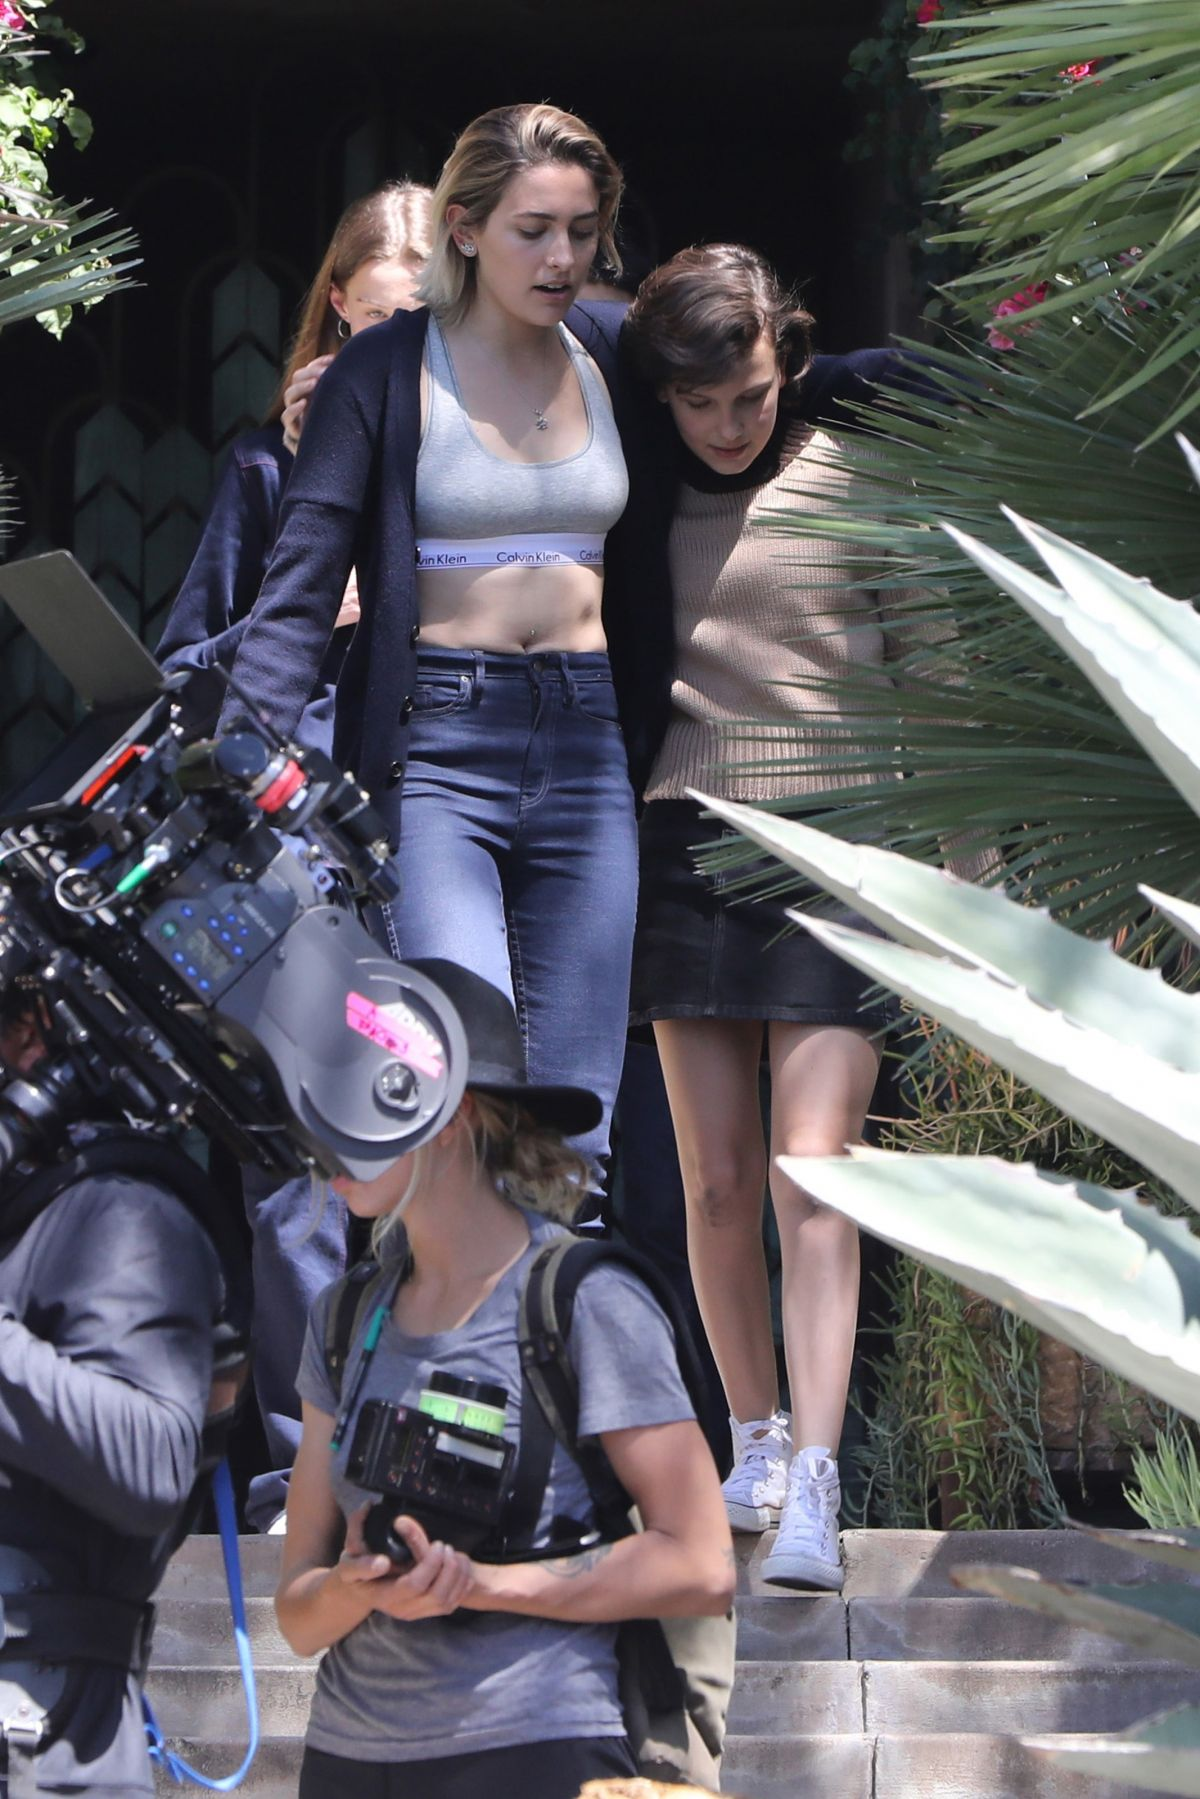 PARIS JACKSON and MILLIE BOBBY BROWN on the Set of Black Dhalia House in Los Angeles 04/20/2017   paris-jackson-and-millie-bobby-brown-on-the-set-of-black-dhalia-house-in-los-angeles-04-20-2017_4